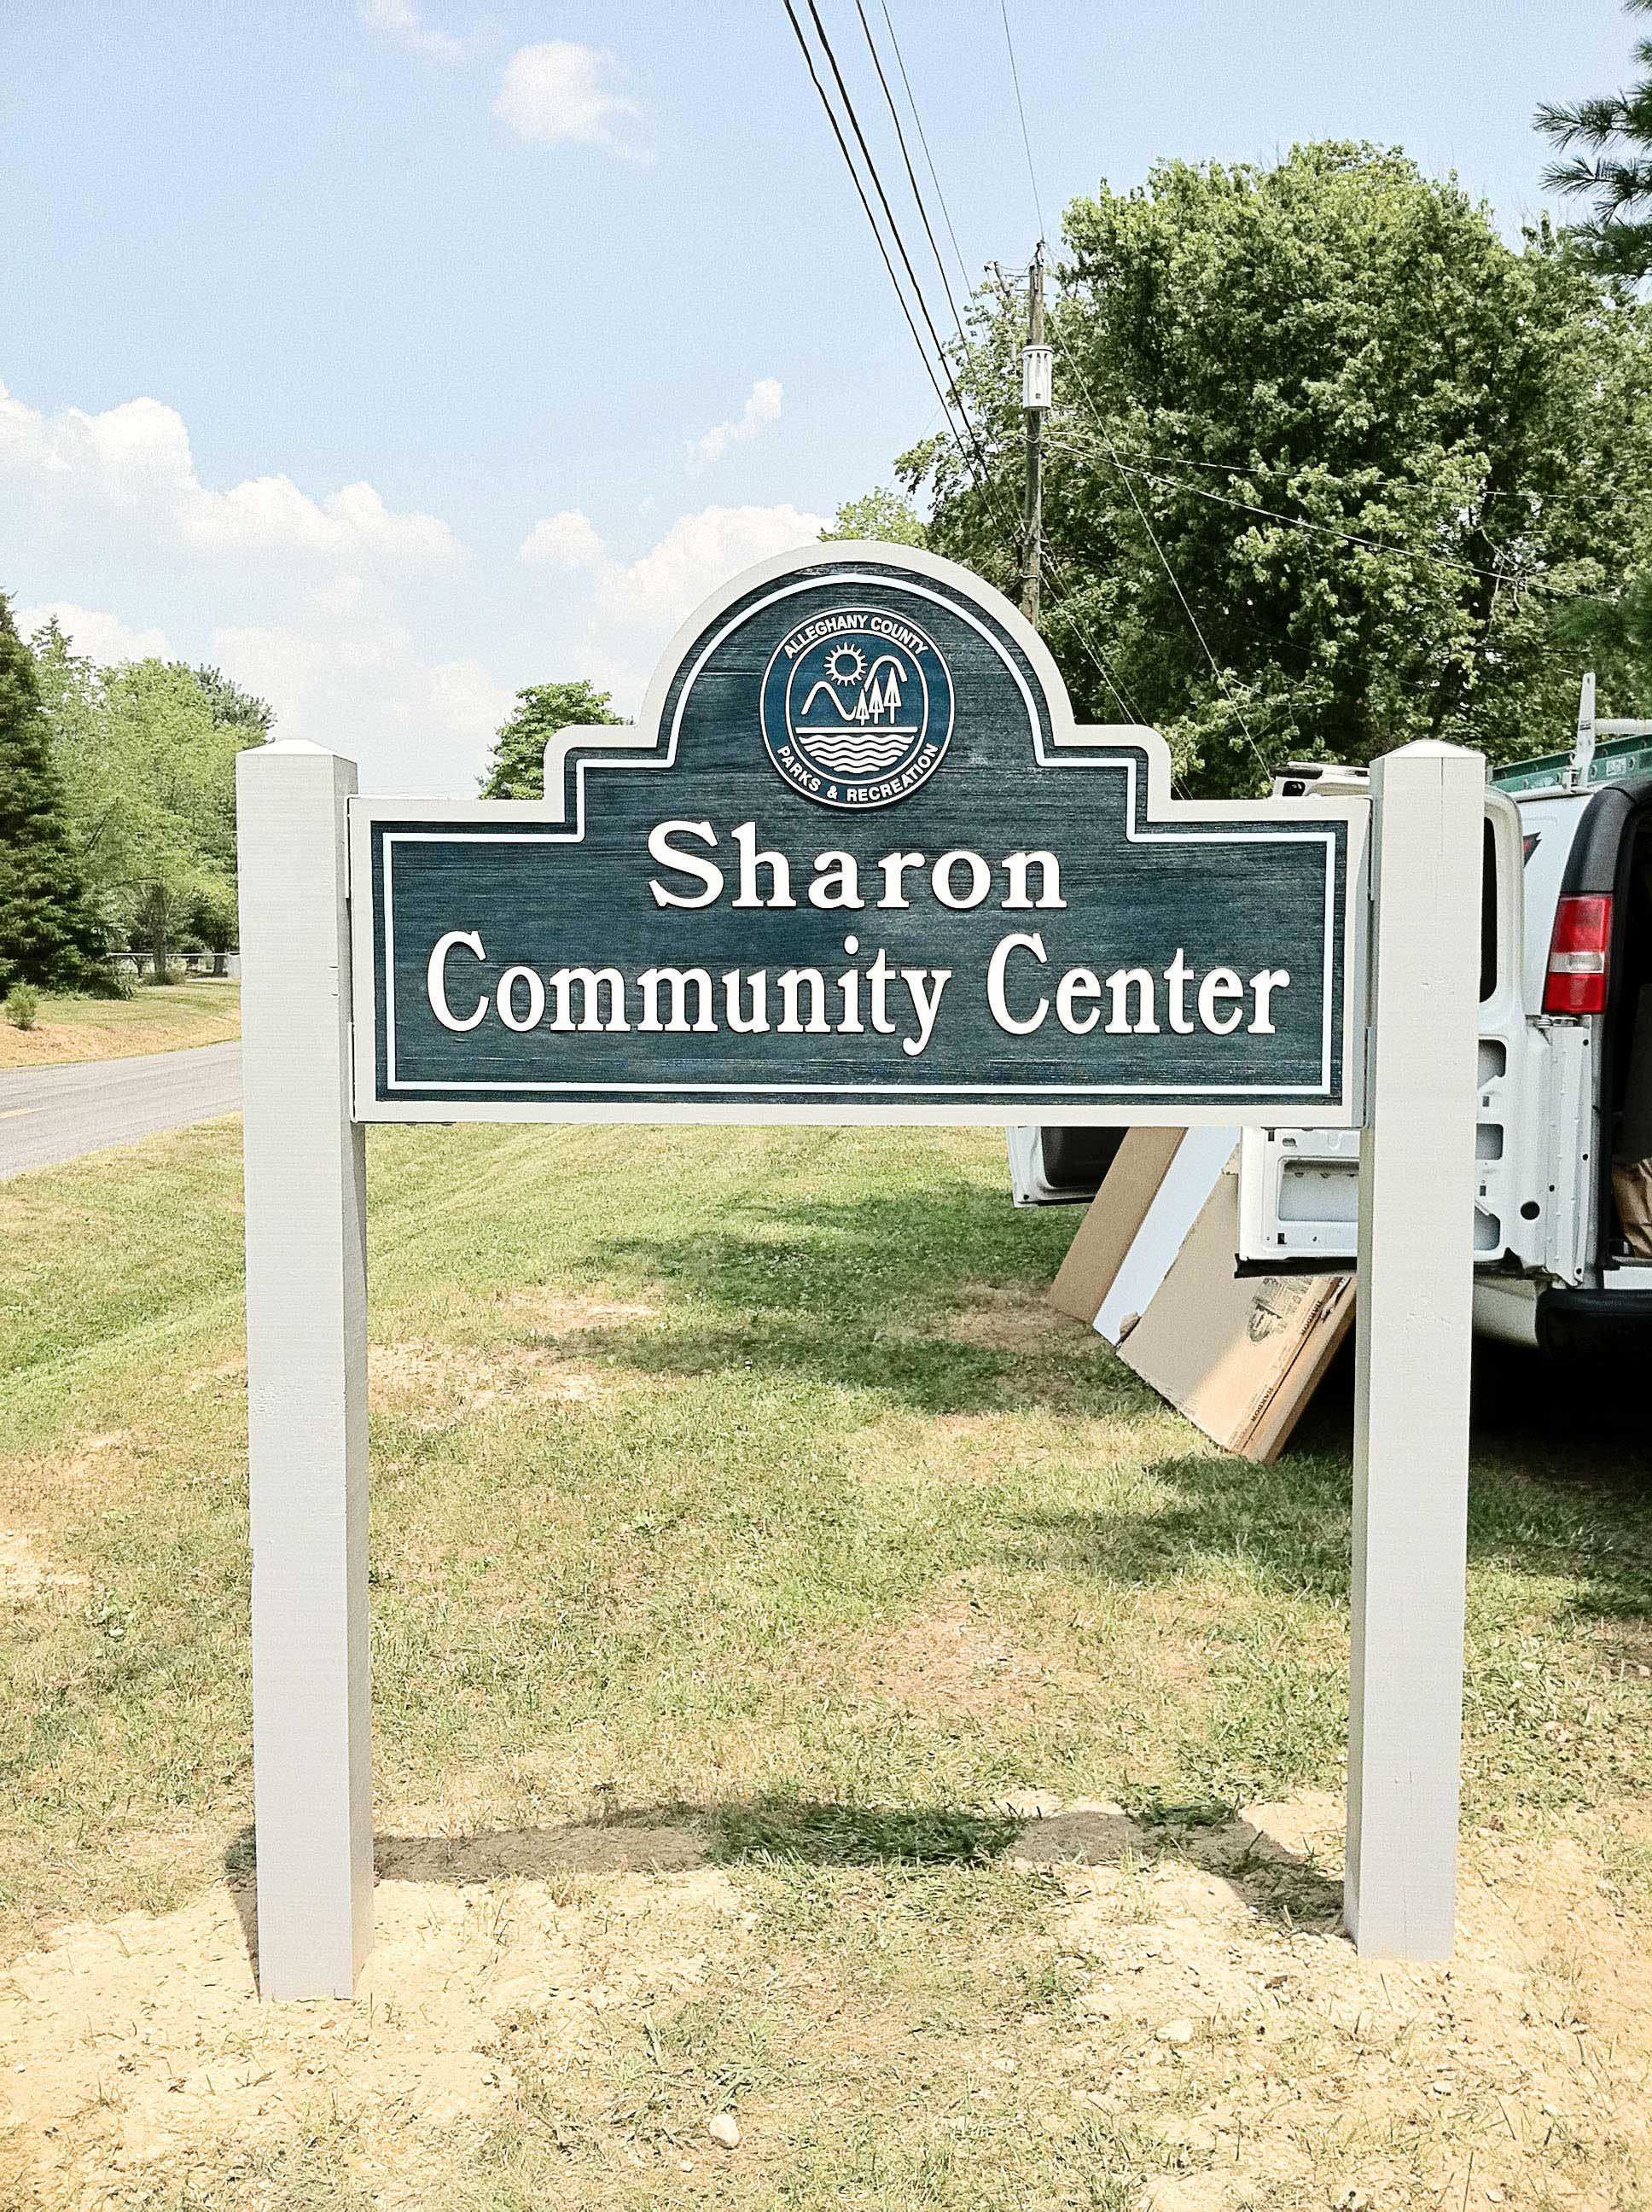 Logo of a community center placed on a roadside in Covington, VA